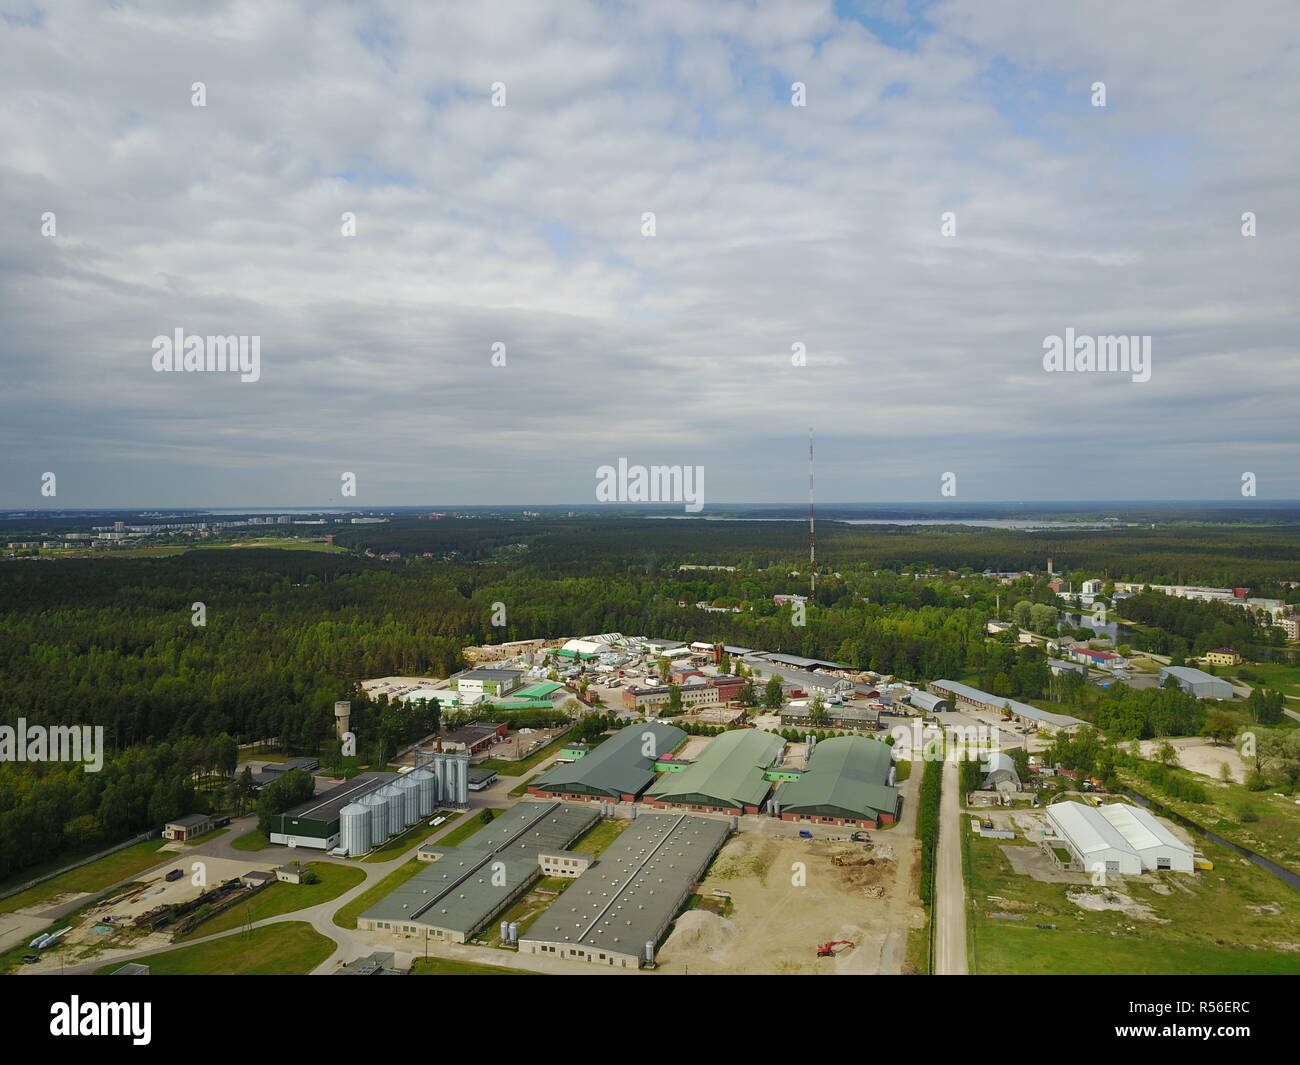 Aerial view of countryside, drone top view - Stock Image